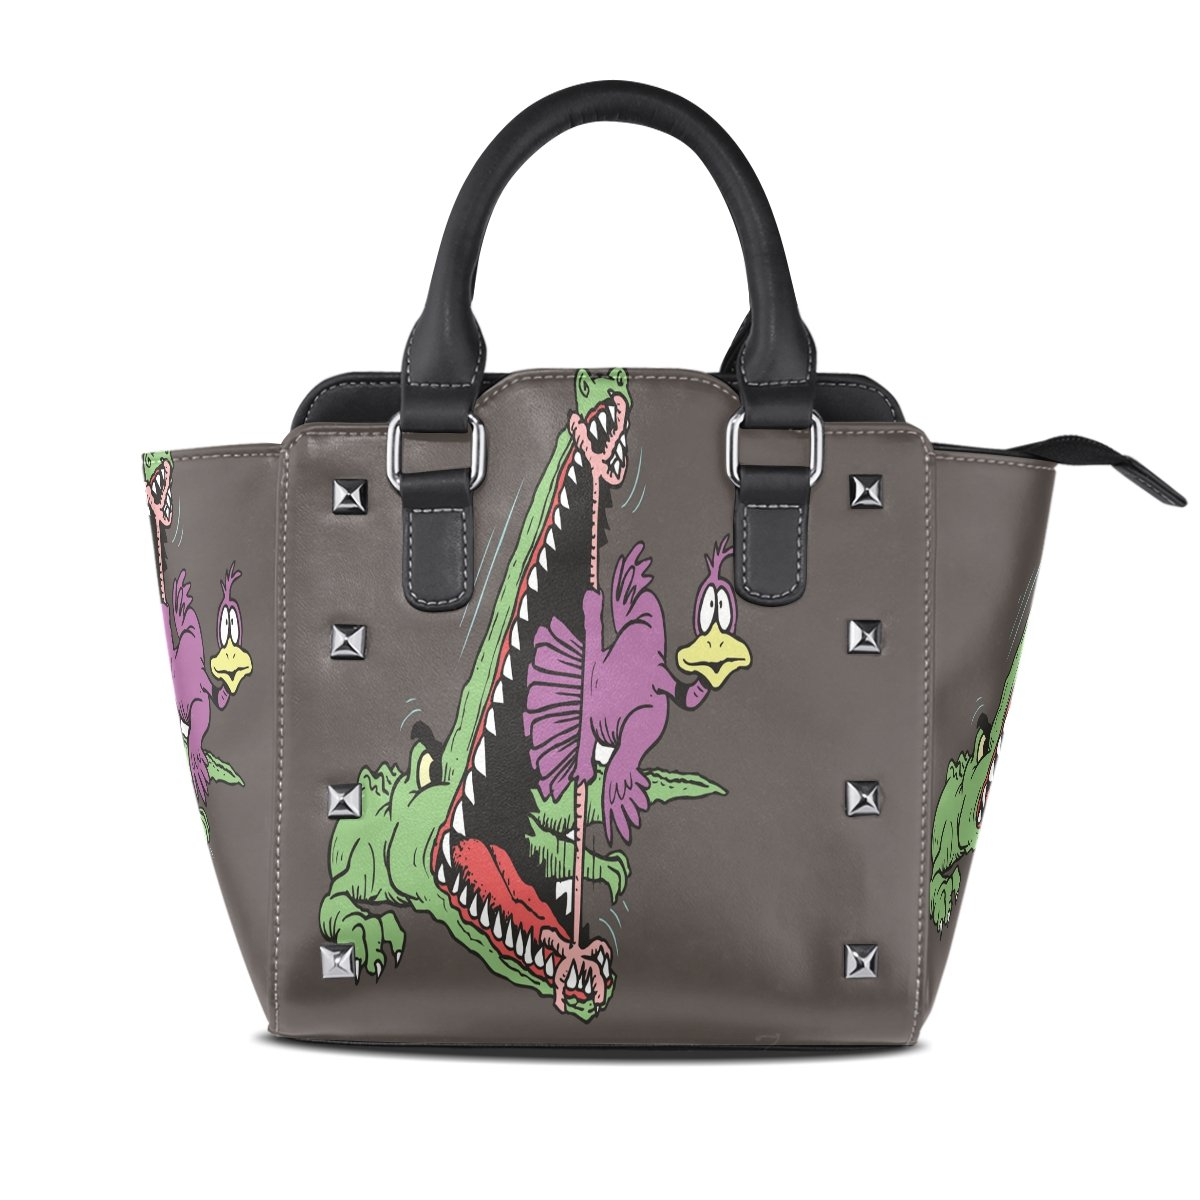 Womens Genuine Leather Hangbags Tote Bags Crocodile Ostrich Purse Shoulder Bags